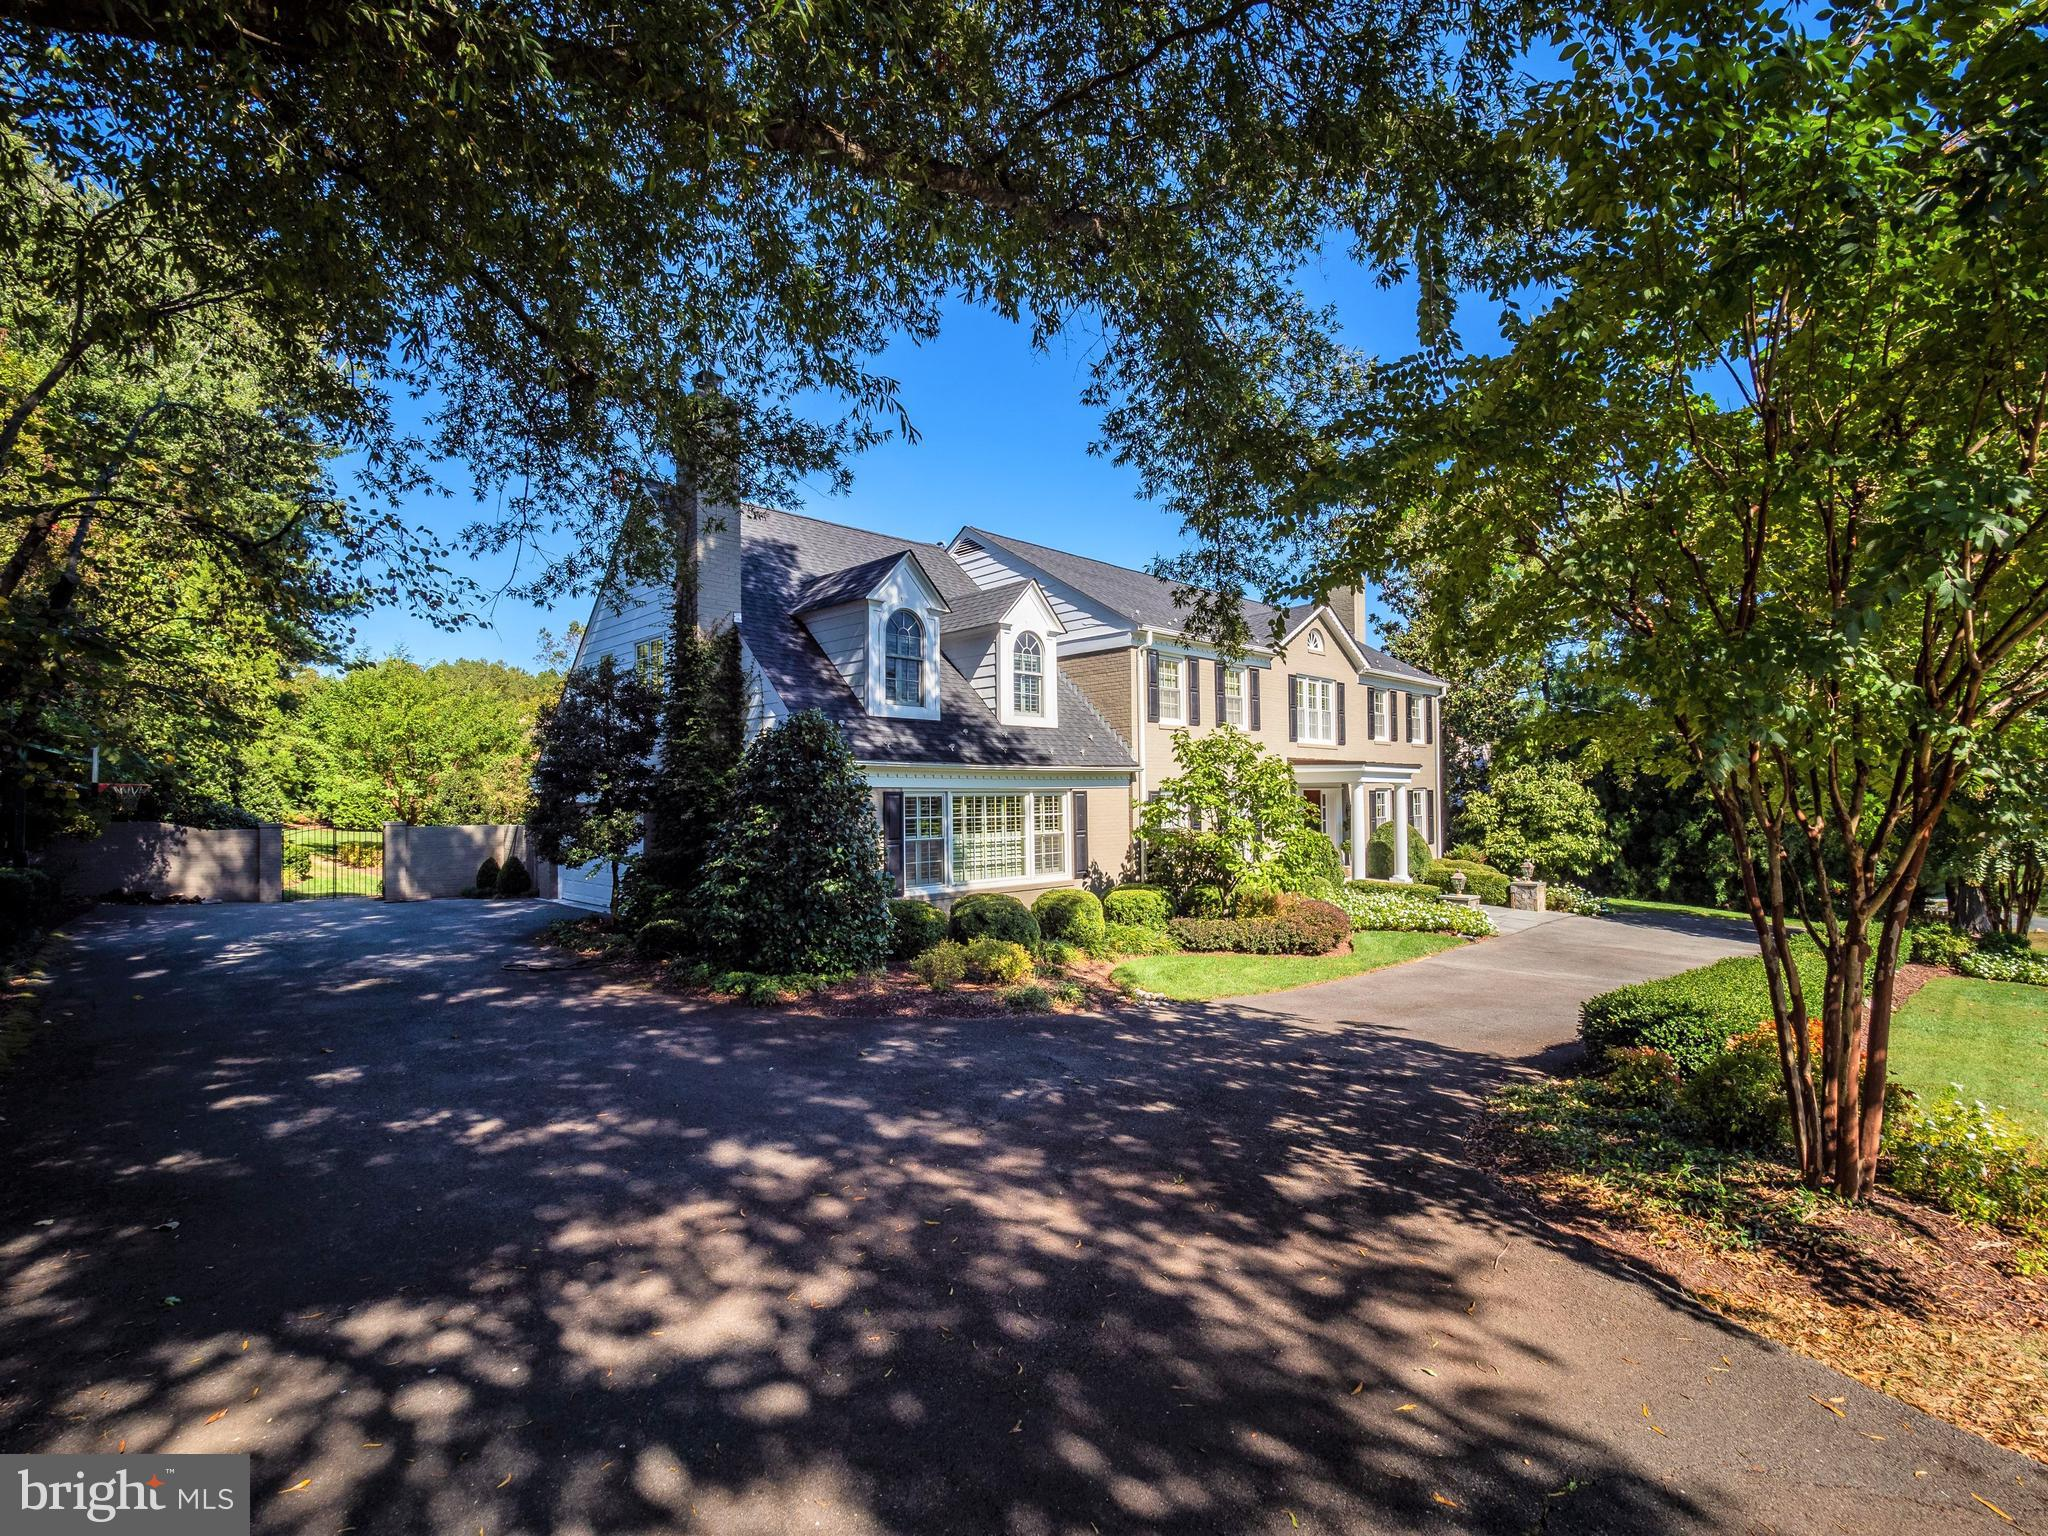 NOT JUST ANOTHER POTOMAC HOME! THIS RESORT STYLE PROPERTY PROVIDES A PEACEFUL OASIS AWAY FROM THE STRESSES OF TODAY'S WORLD. ELEGANTLY APPOINTED, UPDATED HOME WITH A WONDERFUL FLOOR PLAN FOR GRAND ENTERTAINING BOTH INSIDE AND OUT.